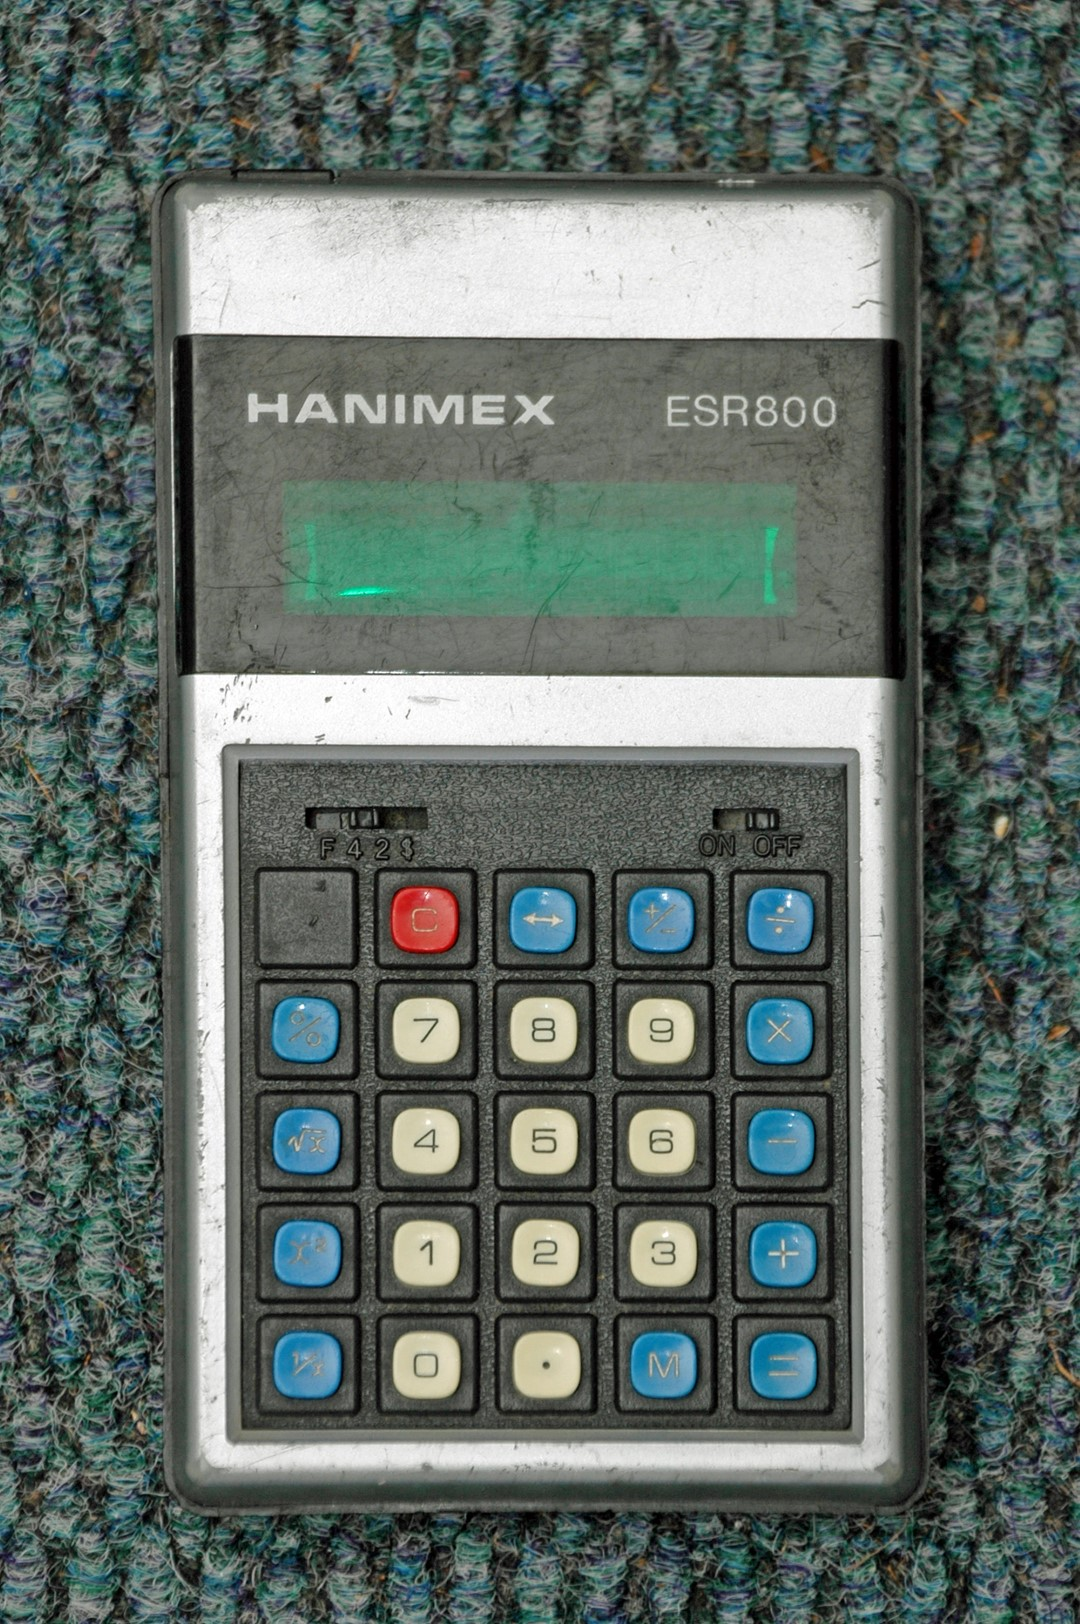 Hanimag ESR 800 calculator